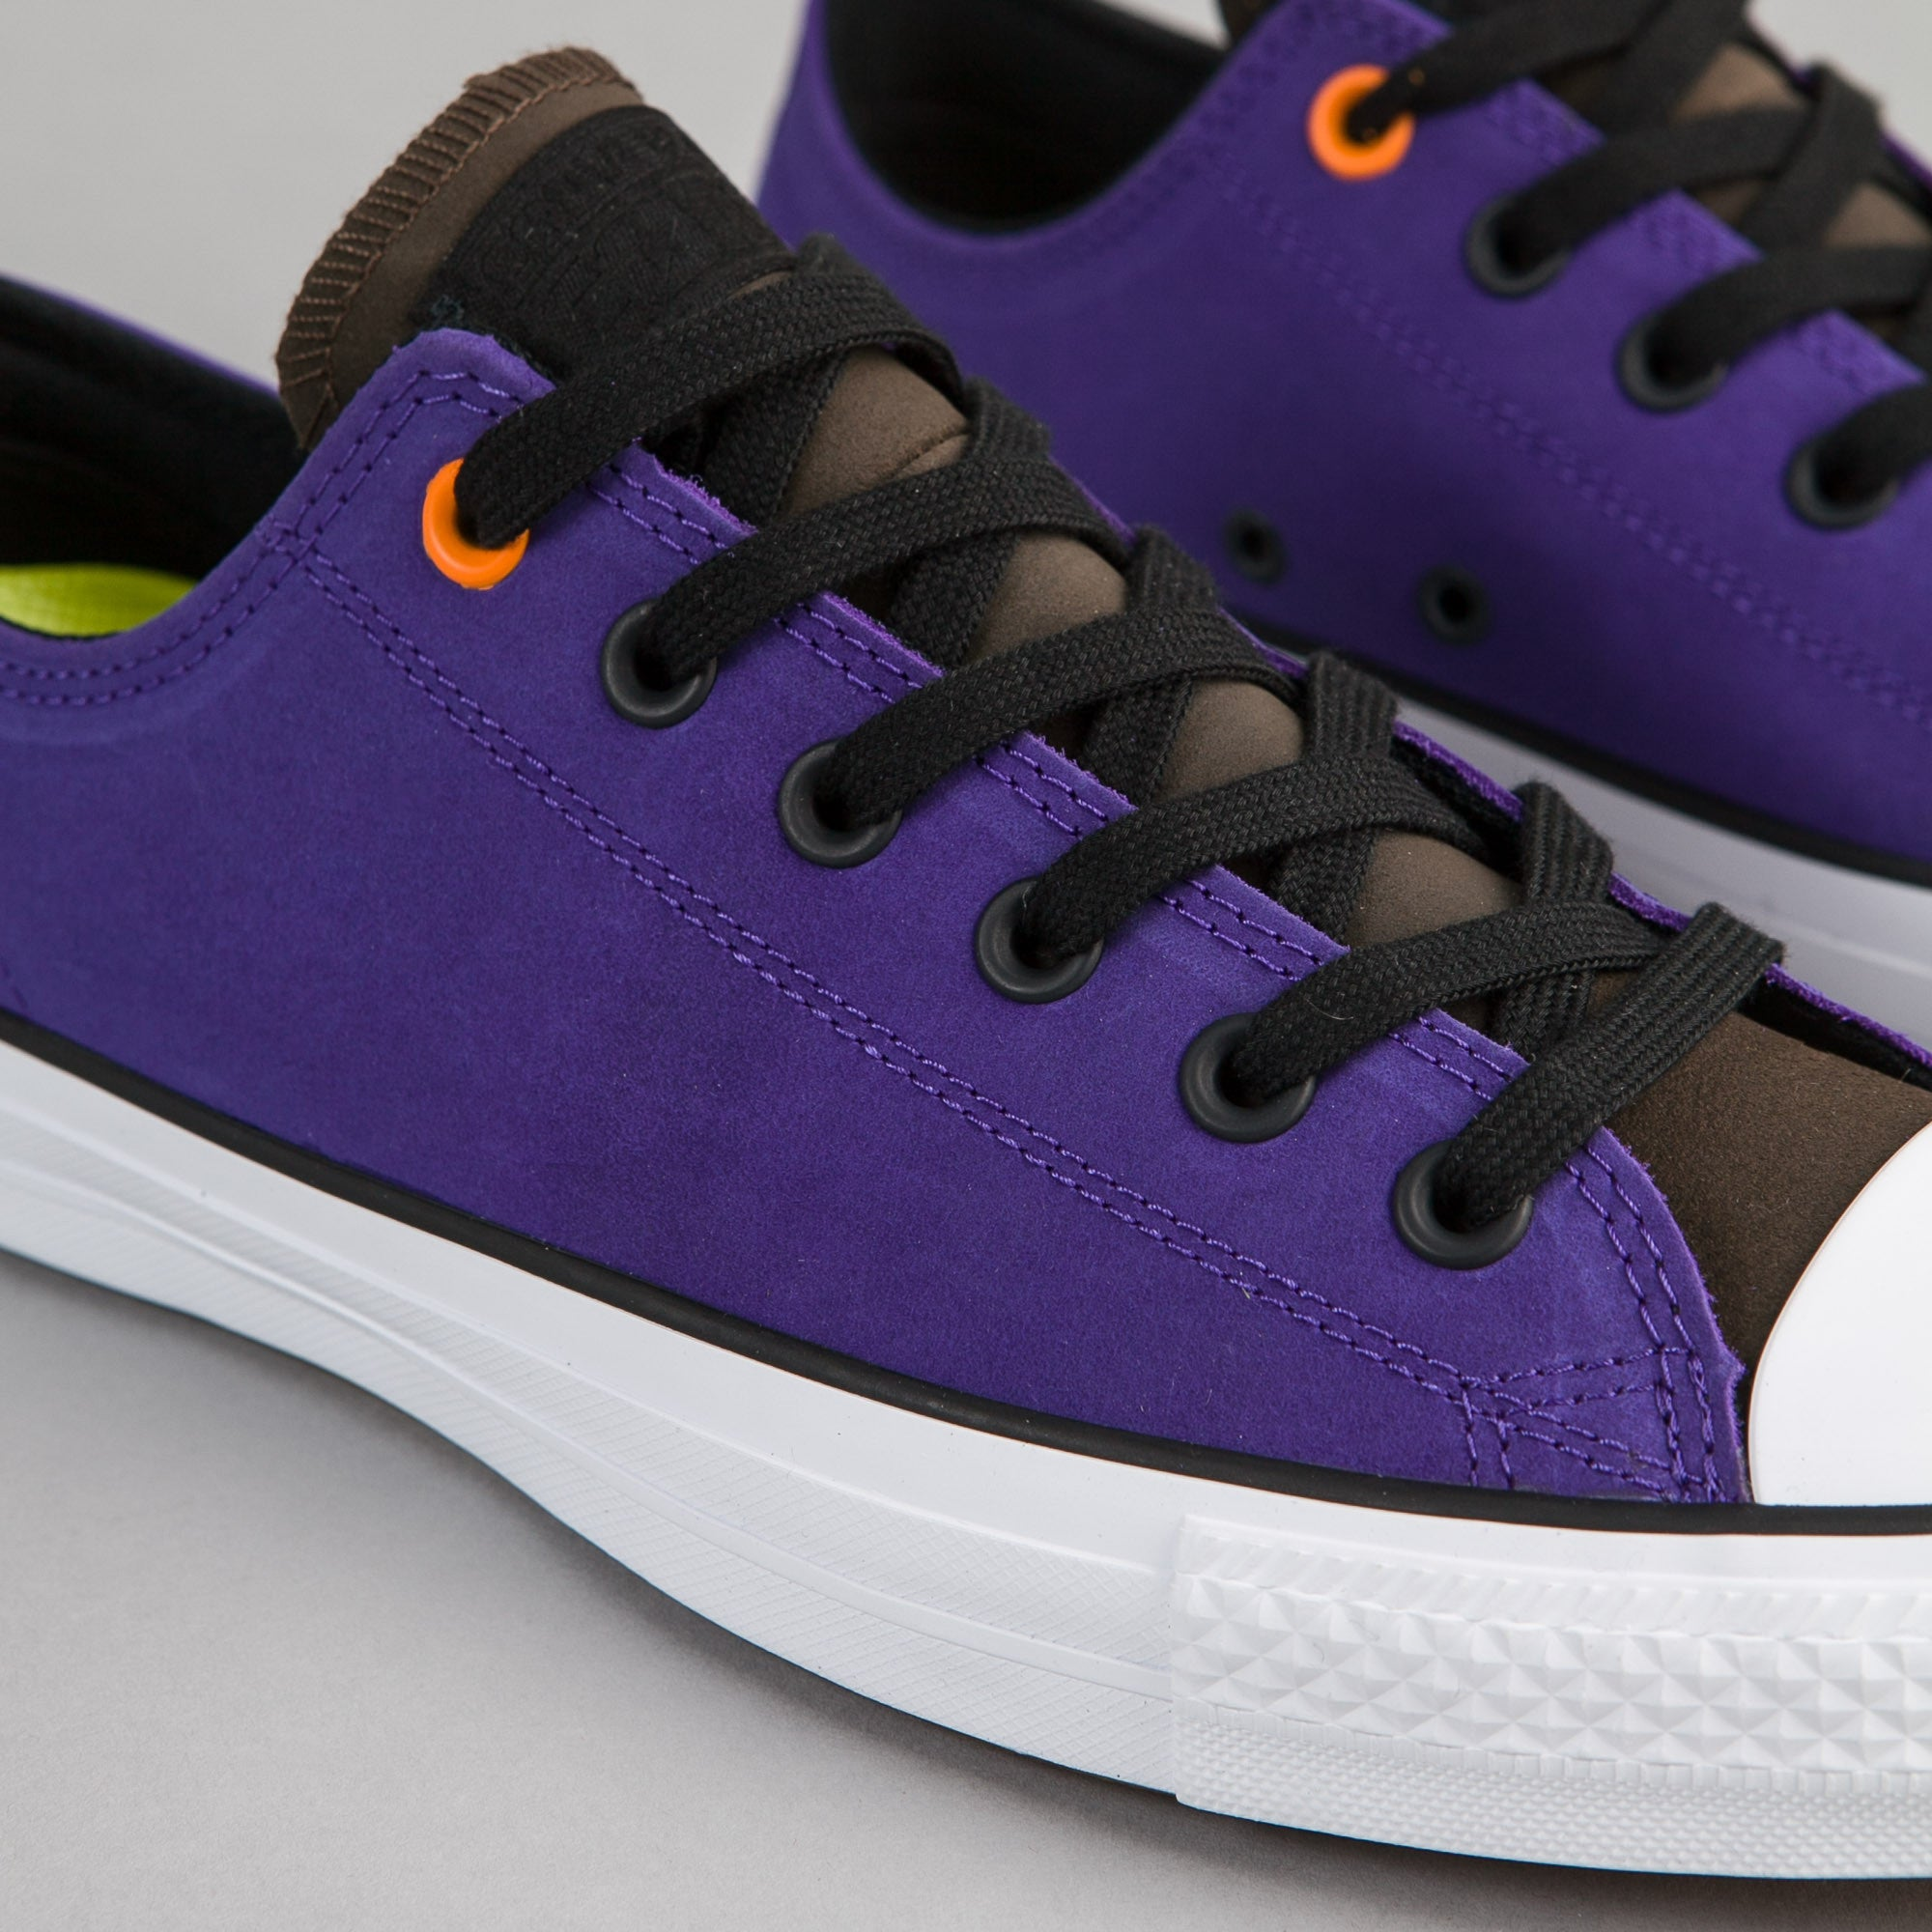 Converse CTAS Pro Leather OX Shoes - Candy Grape / Hot Cocoa / Black